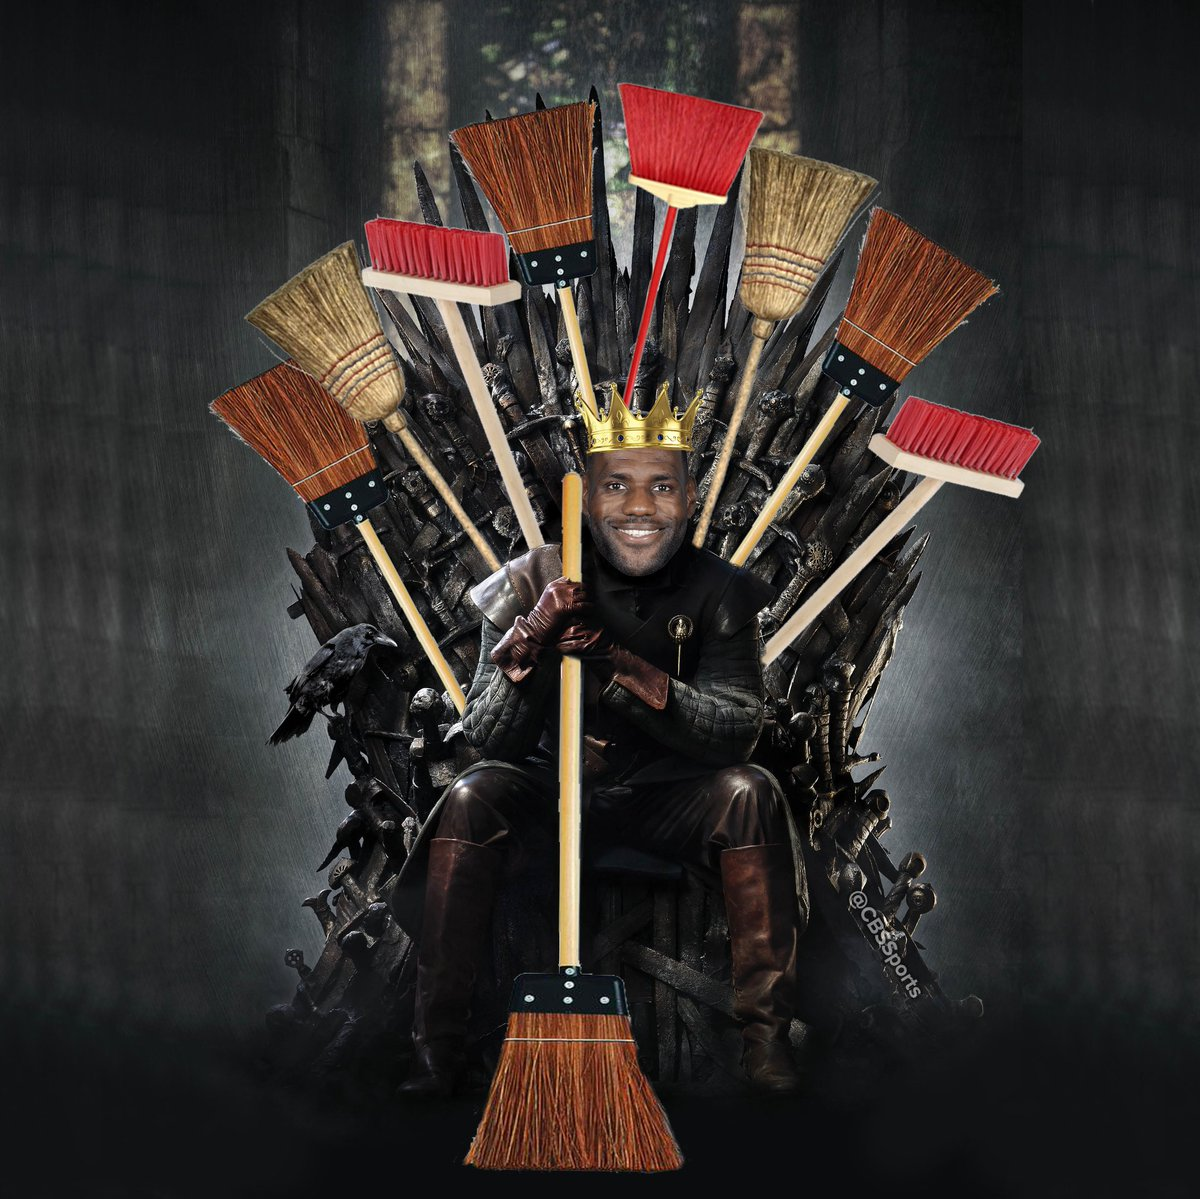 ANOTHER sweep for King James https://t.co/mkxMn4Ol12